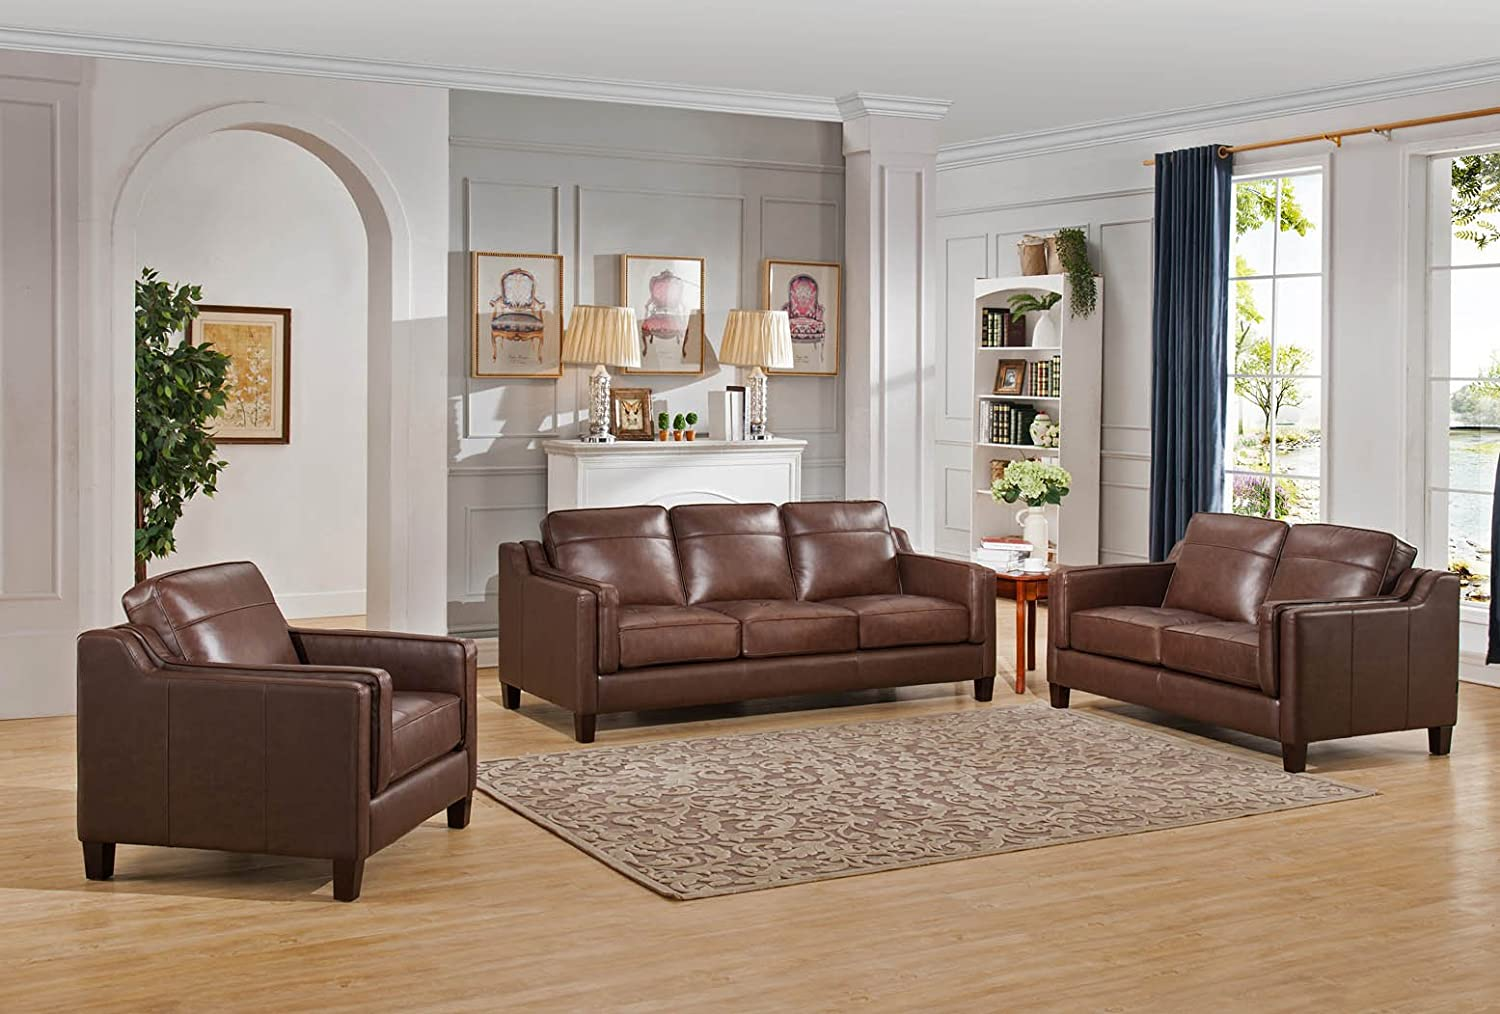 Amax Leather Acorn 3 Piece Sofa Set - Brown